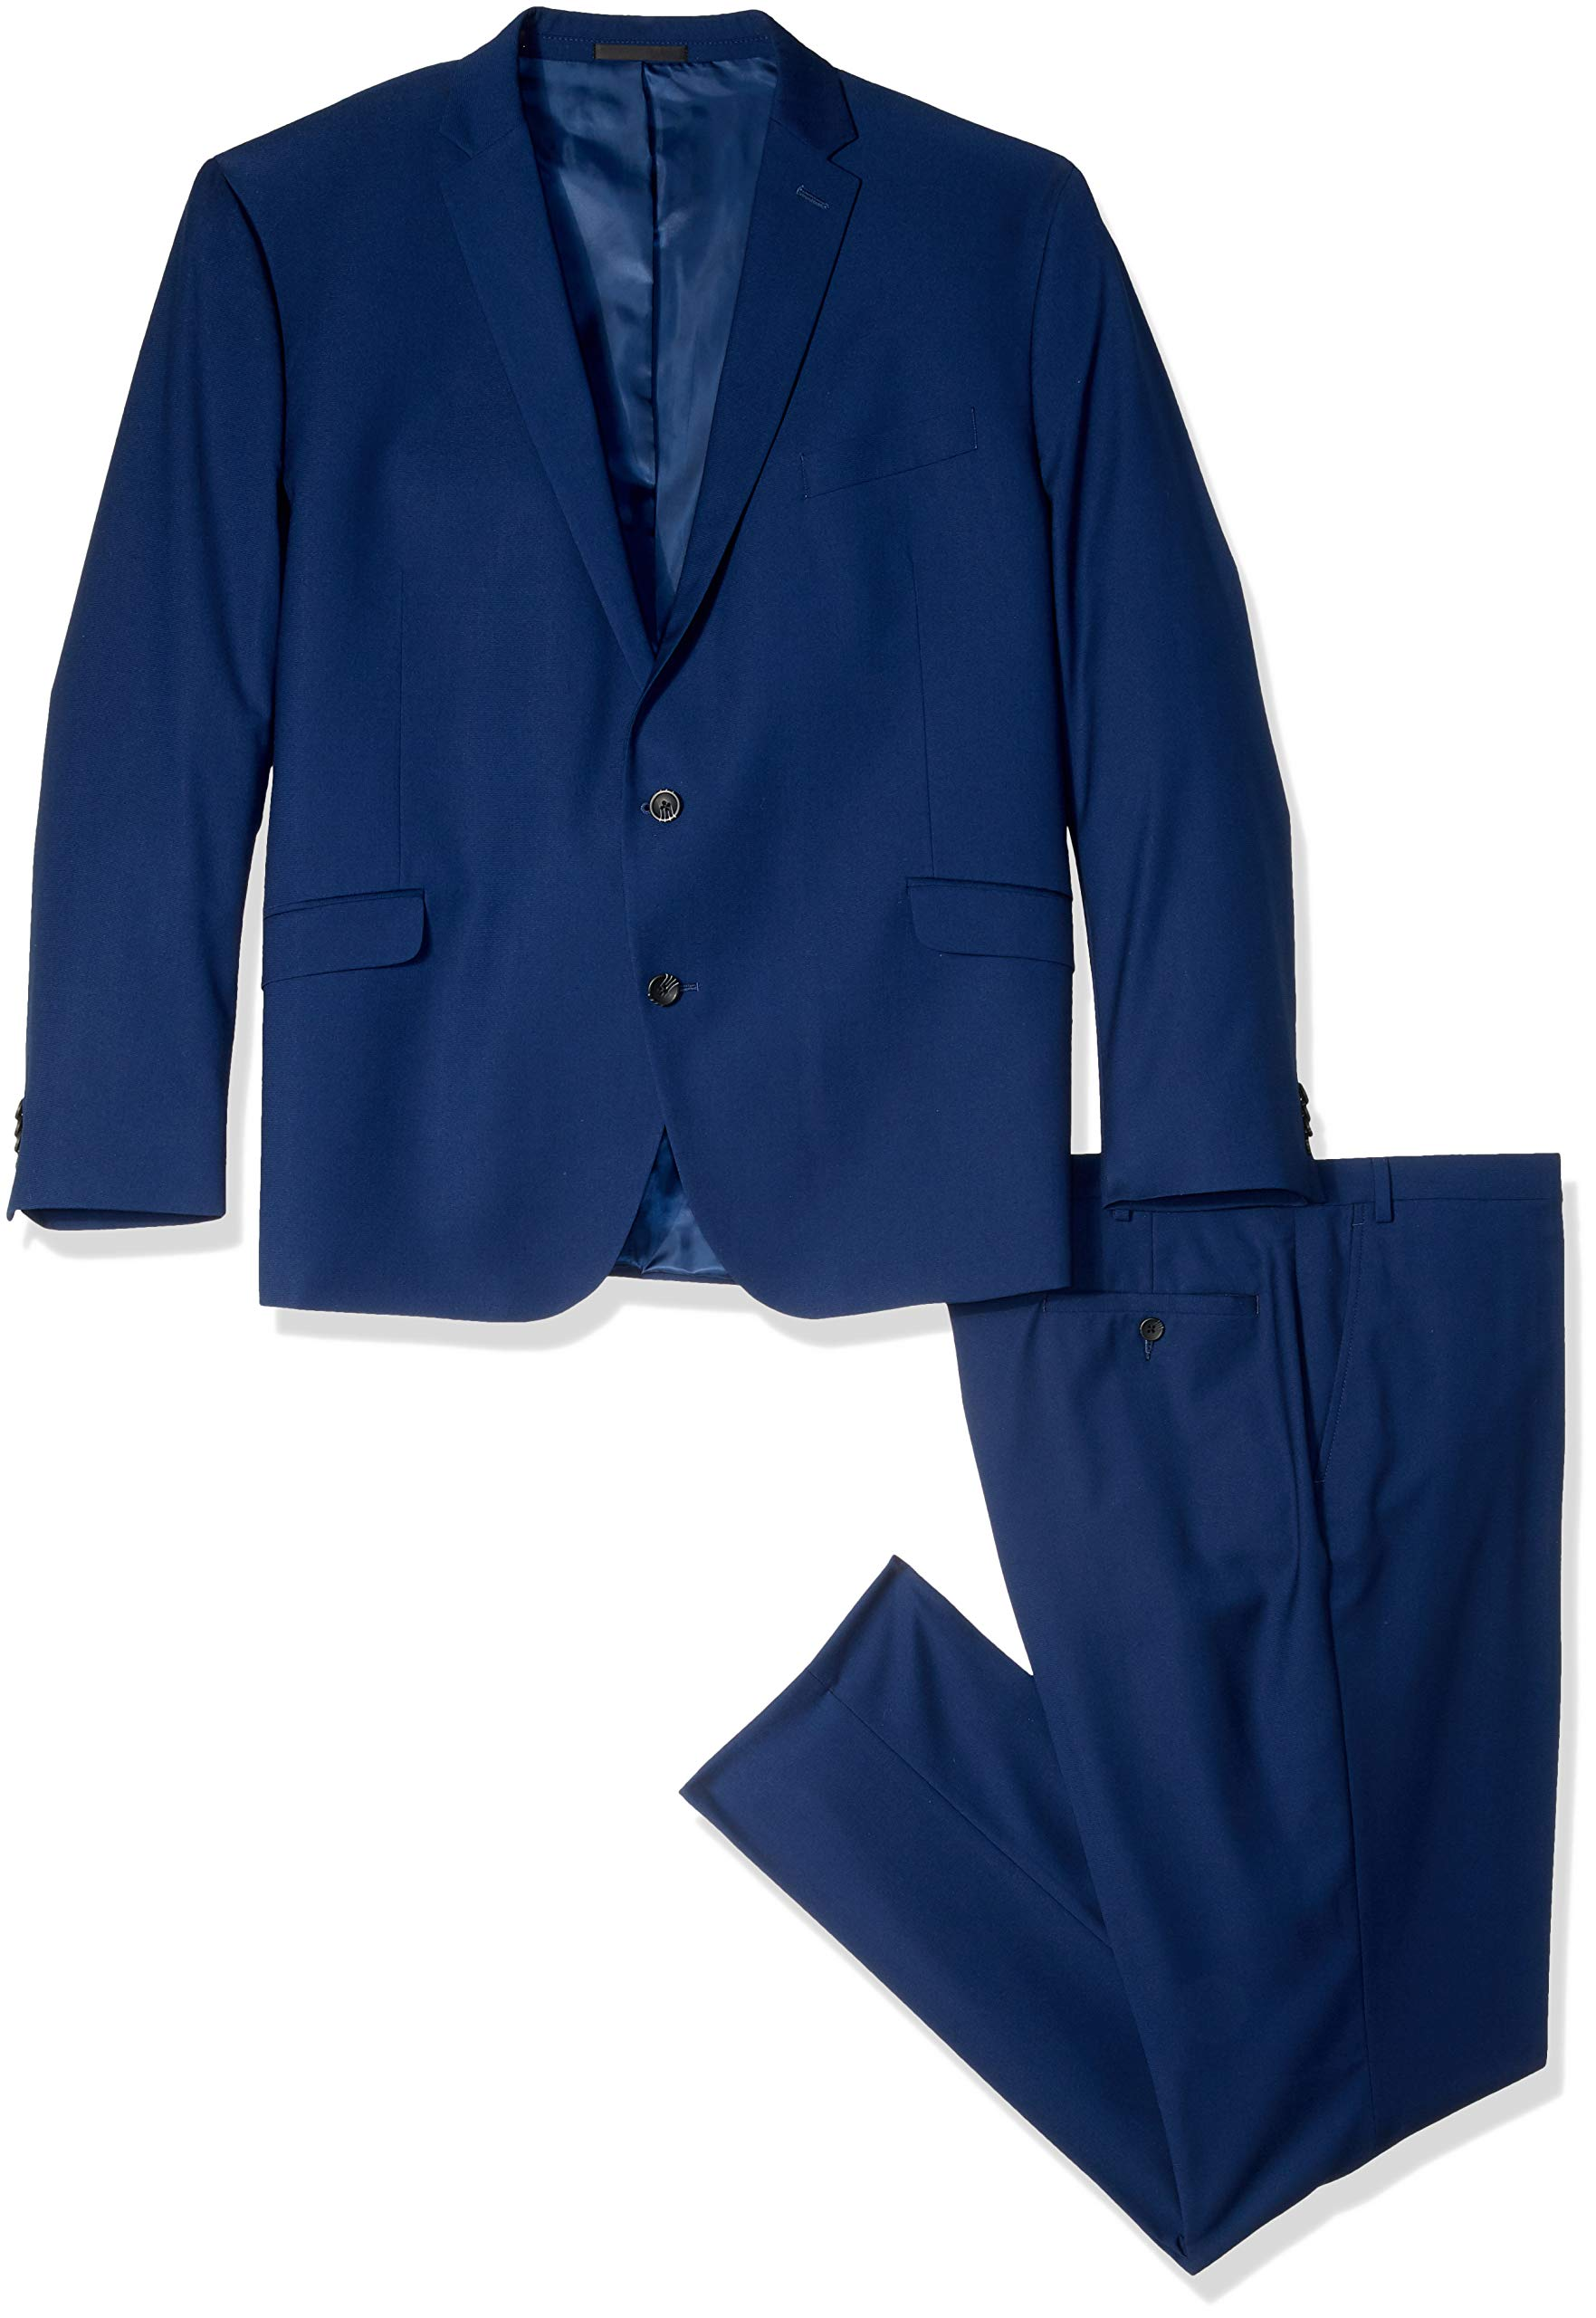 Kenneth Cole REACTION Men's Big and Tall Big & Tall Performance Stretch Suit, Modern Blue, 52 Regular